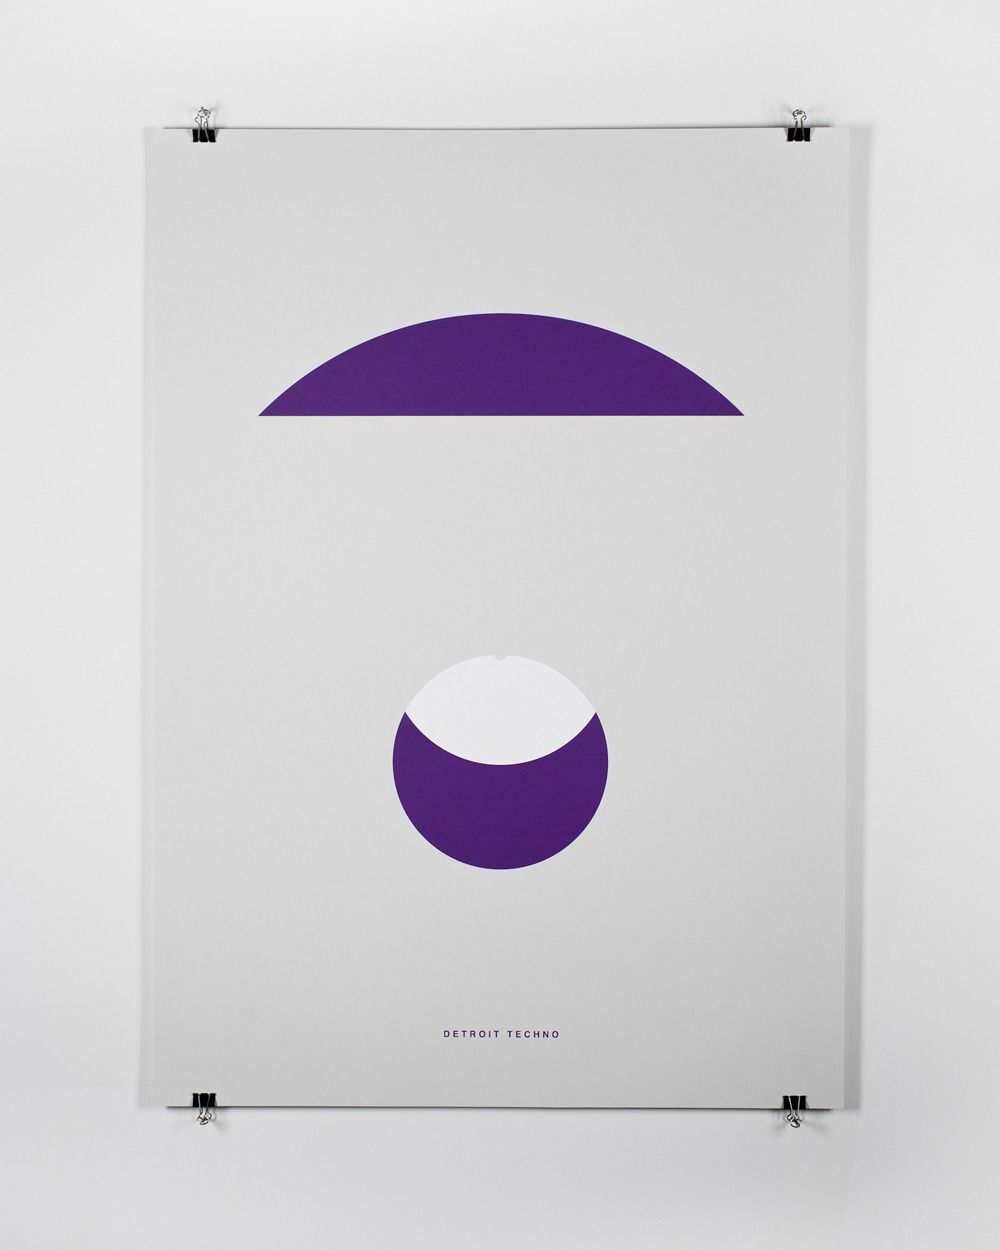 Edits by Edit - A poster series curated by Edit — each designer was asked to represent a musical genre using one shape and one type (stating the genre).